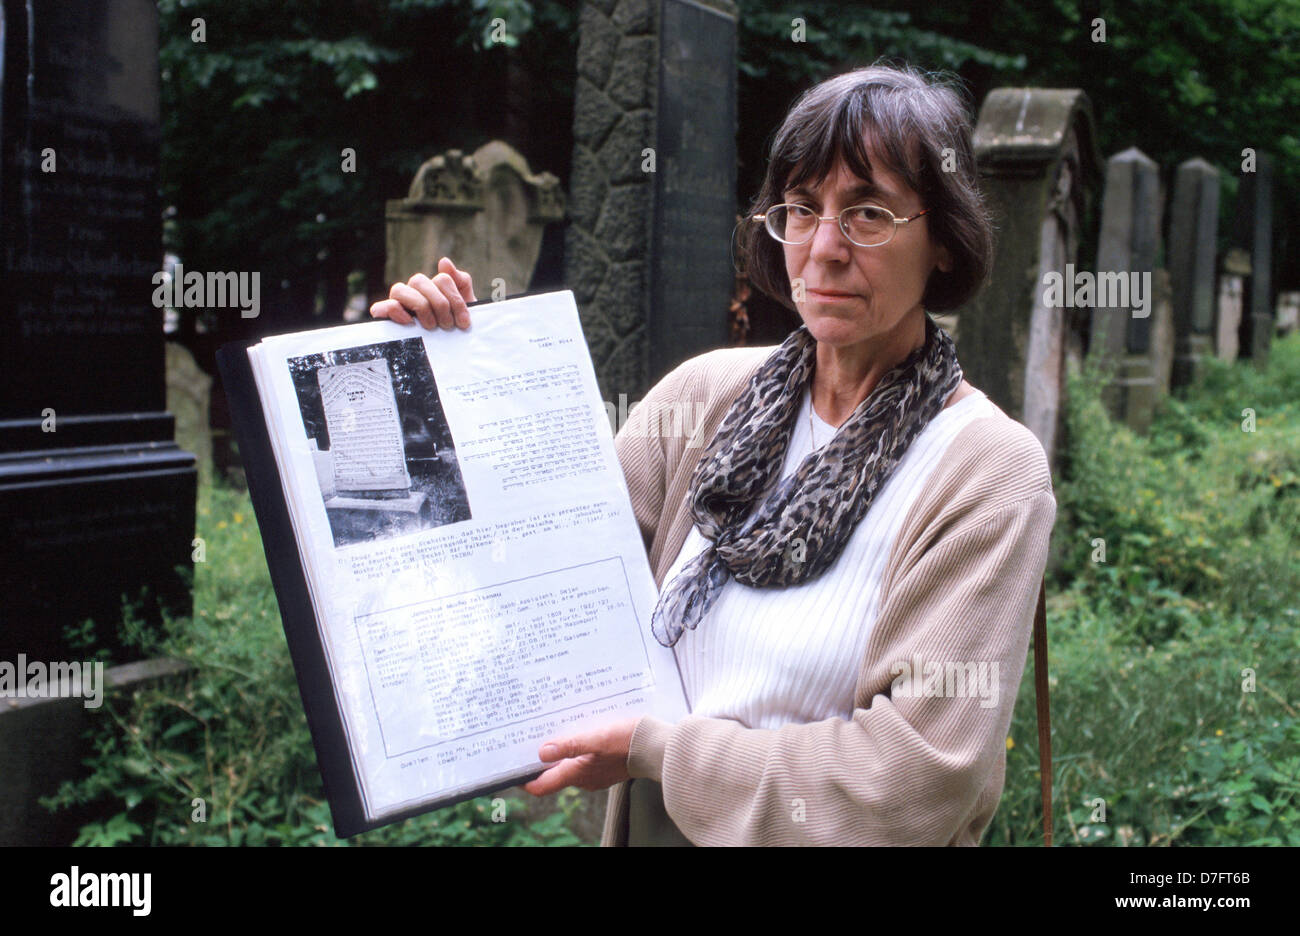 Gisela Blume, researcher and guardian of the Old Jewish Cemetery in Fürth, Germany - Stock Image